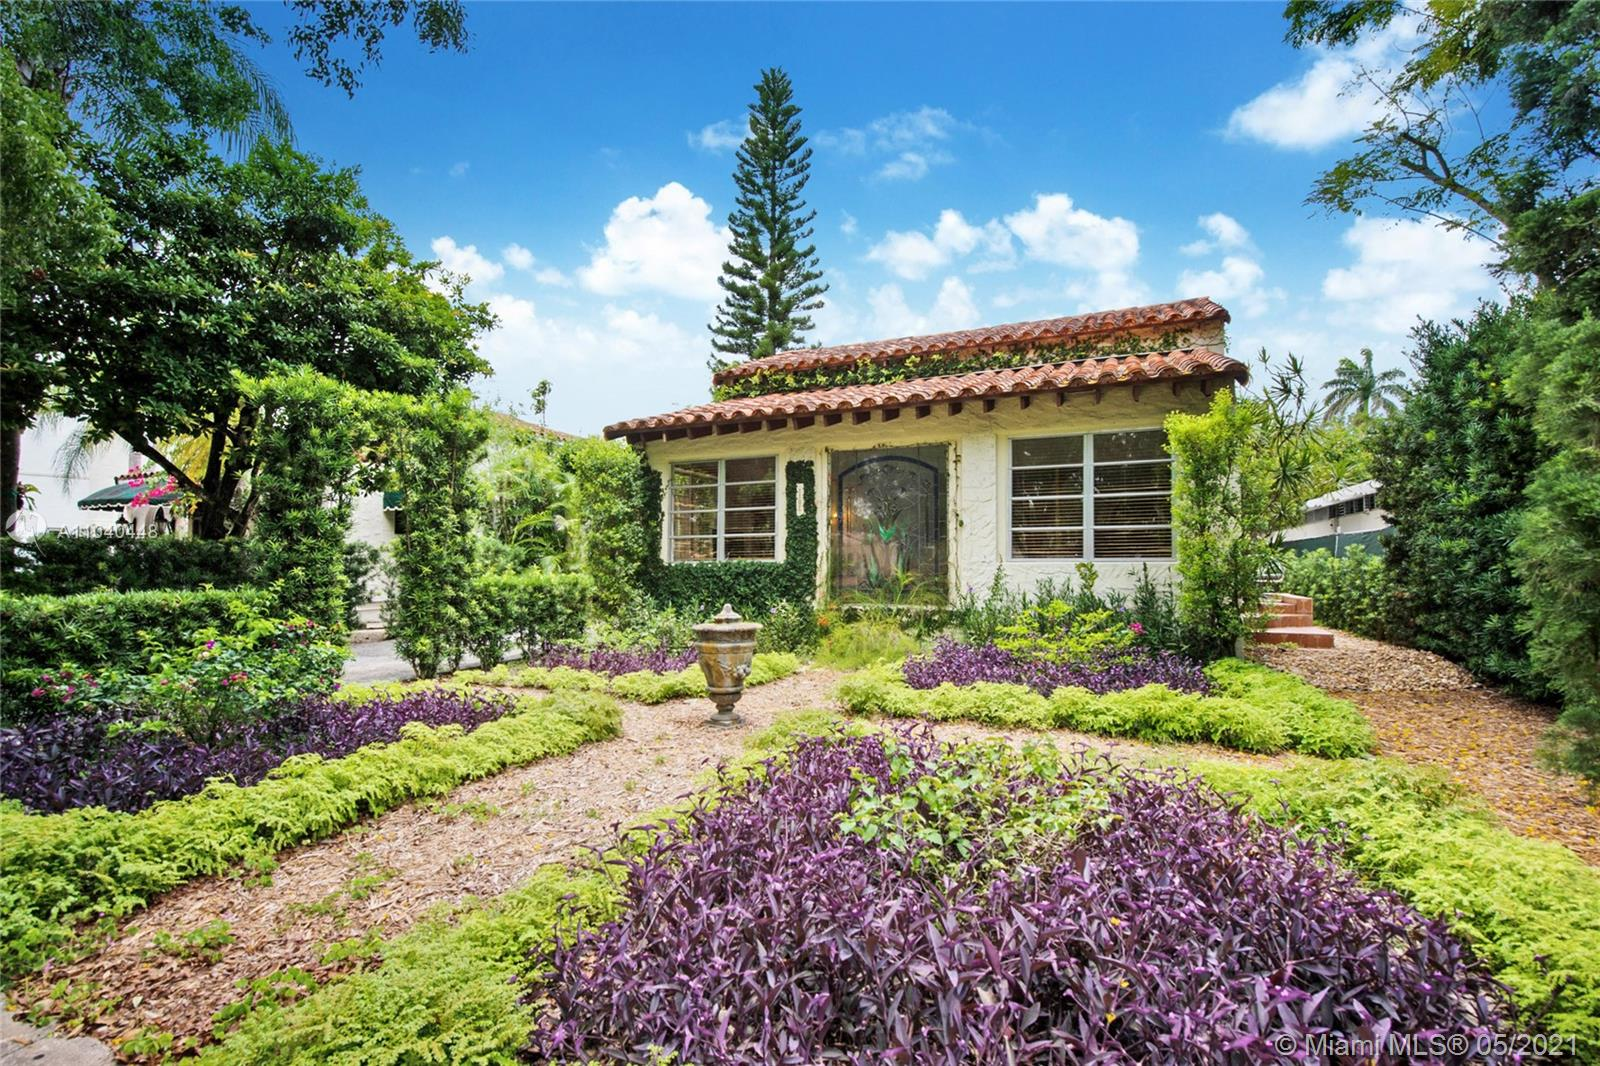 Embrace the charming lifestyle of Coral Gables with this Old Spanish historic designated home. Main house is 3115 sqf and the cottage is 900 sqf for a total of 4015 sqf. Located in the coveted Alhambra Circle Blvd, this two buildings beautiful residence is surrounded by mature oak trees. The main house includes 3 beds/2 baths, original pine flooring, luminous kitchen with antique white cabinets, formal dining room and a spacious living room with historic touches such as a Florida coral stone wood burning fireplace, spanish tile and colorful stained glass window,  two tropical terraces to enjoy the outdoors.  Detached, you'll find a 2 story guest cottage with 2 beds/1 bath, full size living /dining and fenced patio under the shade of trees.  The of living space in a 7,500 sqf lot.